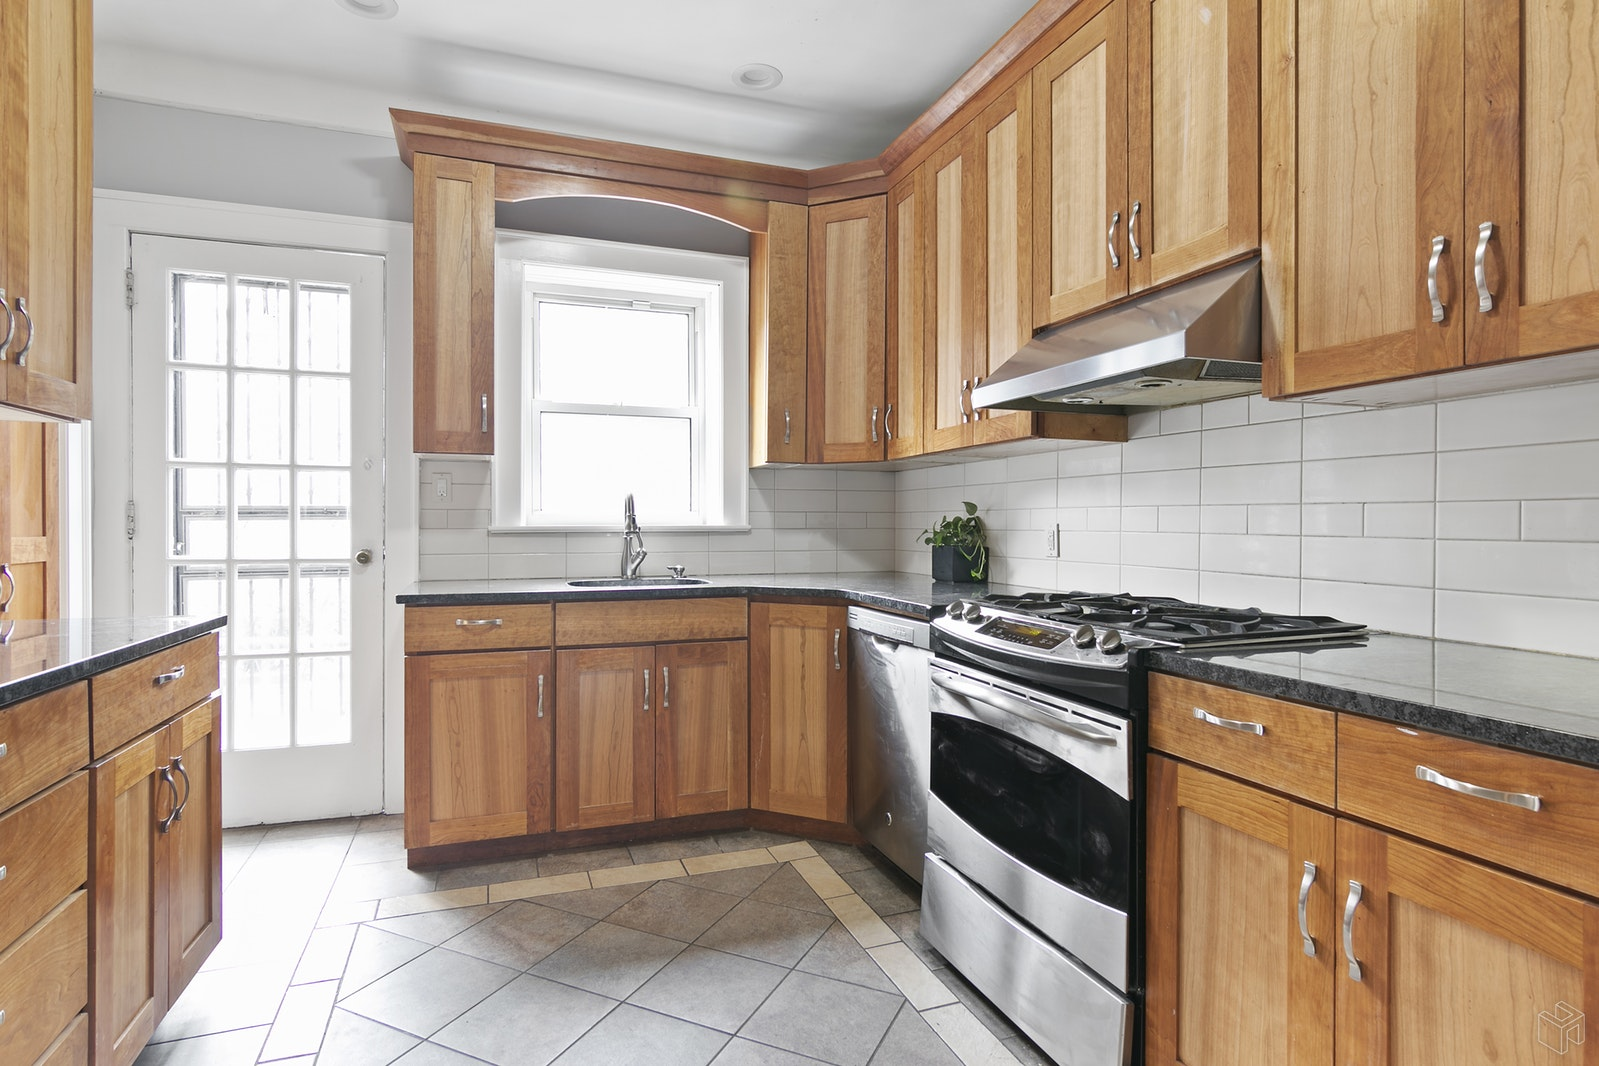 2108 Kenmore Terrace, Flatbush, Brooklyn, NY, 11226, $1,650,000, Property For Sale, Halstead Real Estate, Photo 2